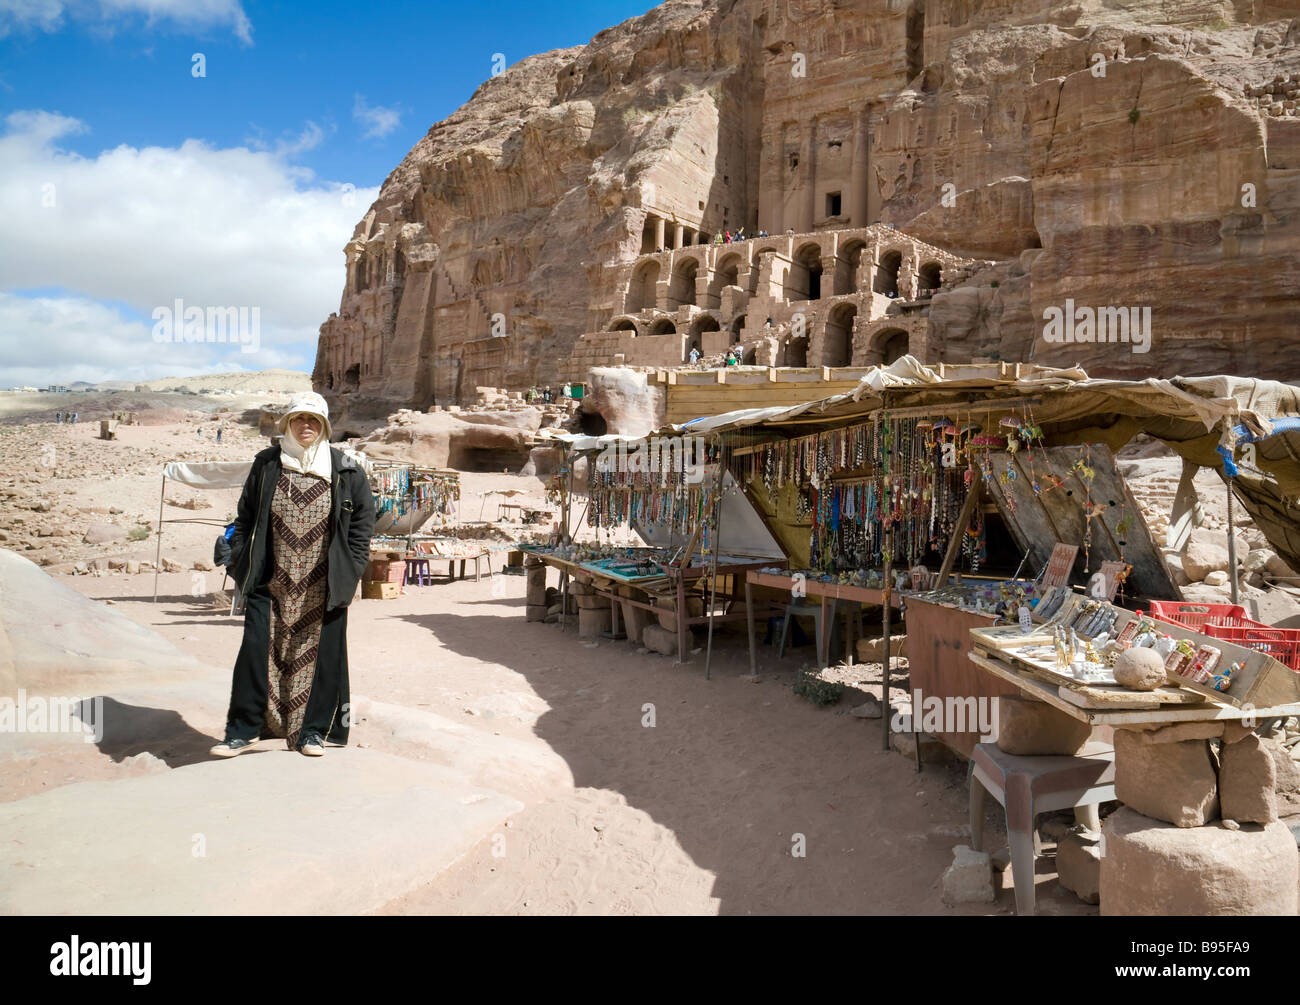 A shopkeeper selling souvenirs in Petra, Jordan - Stock Image